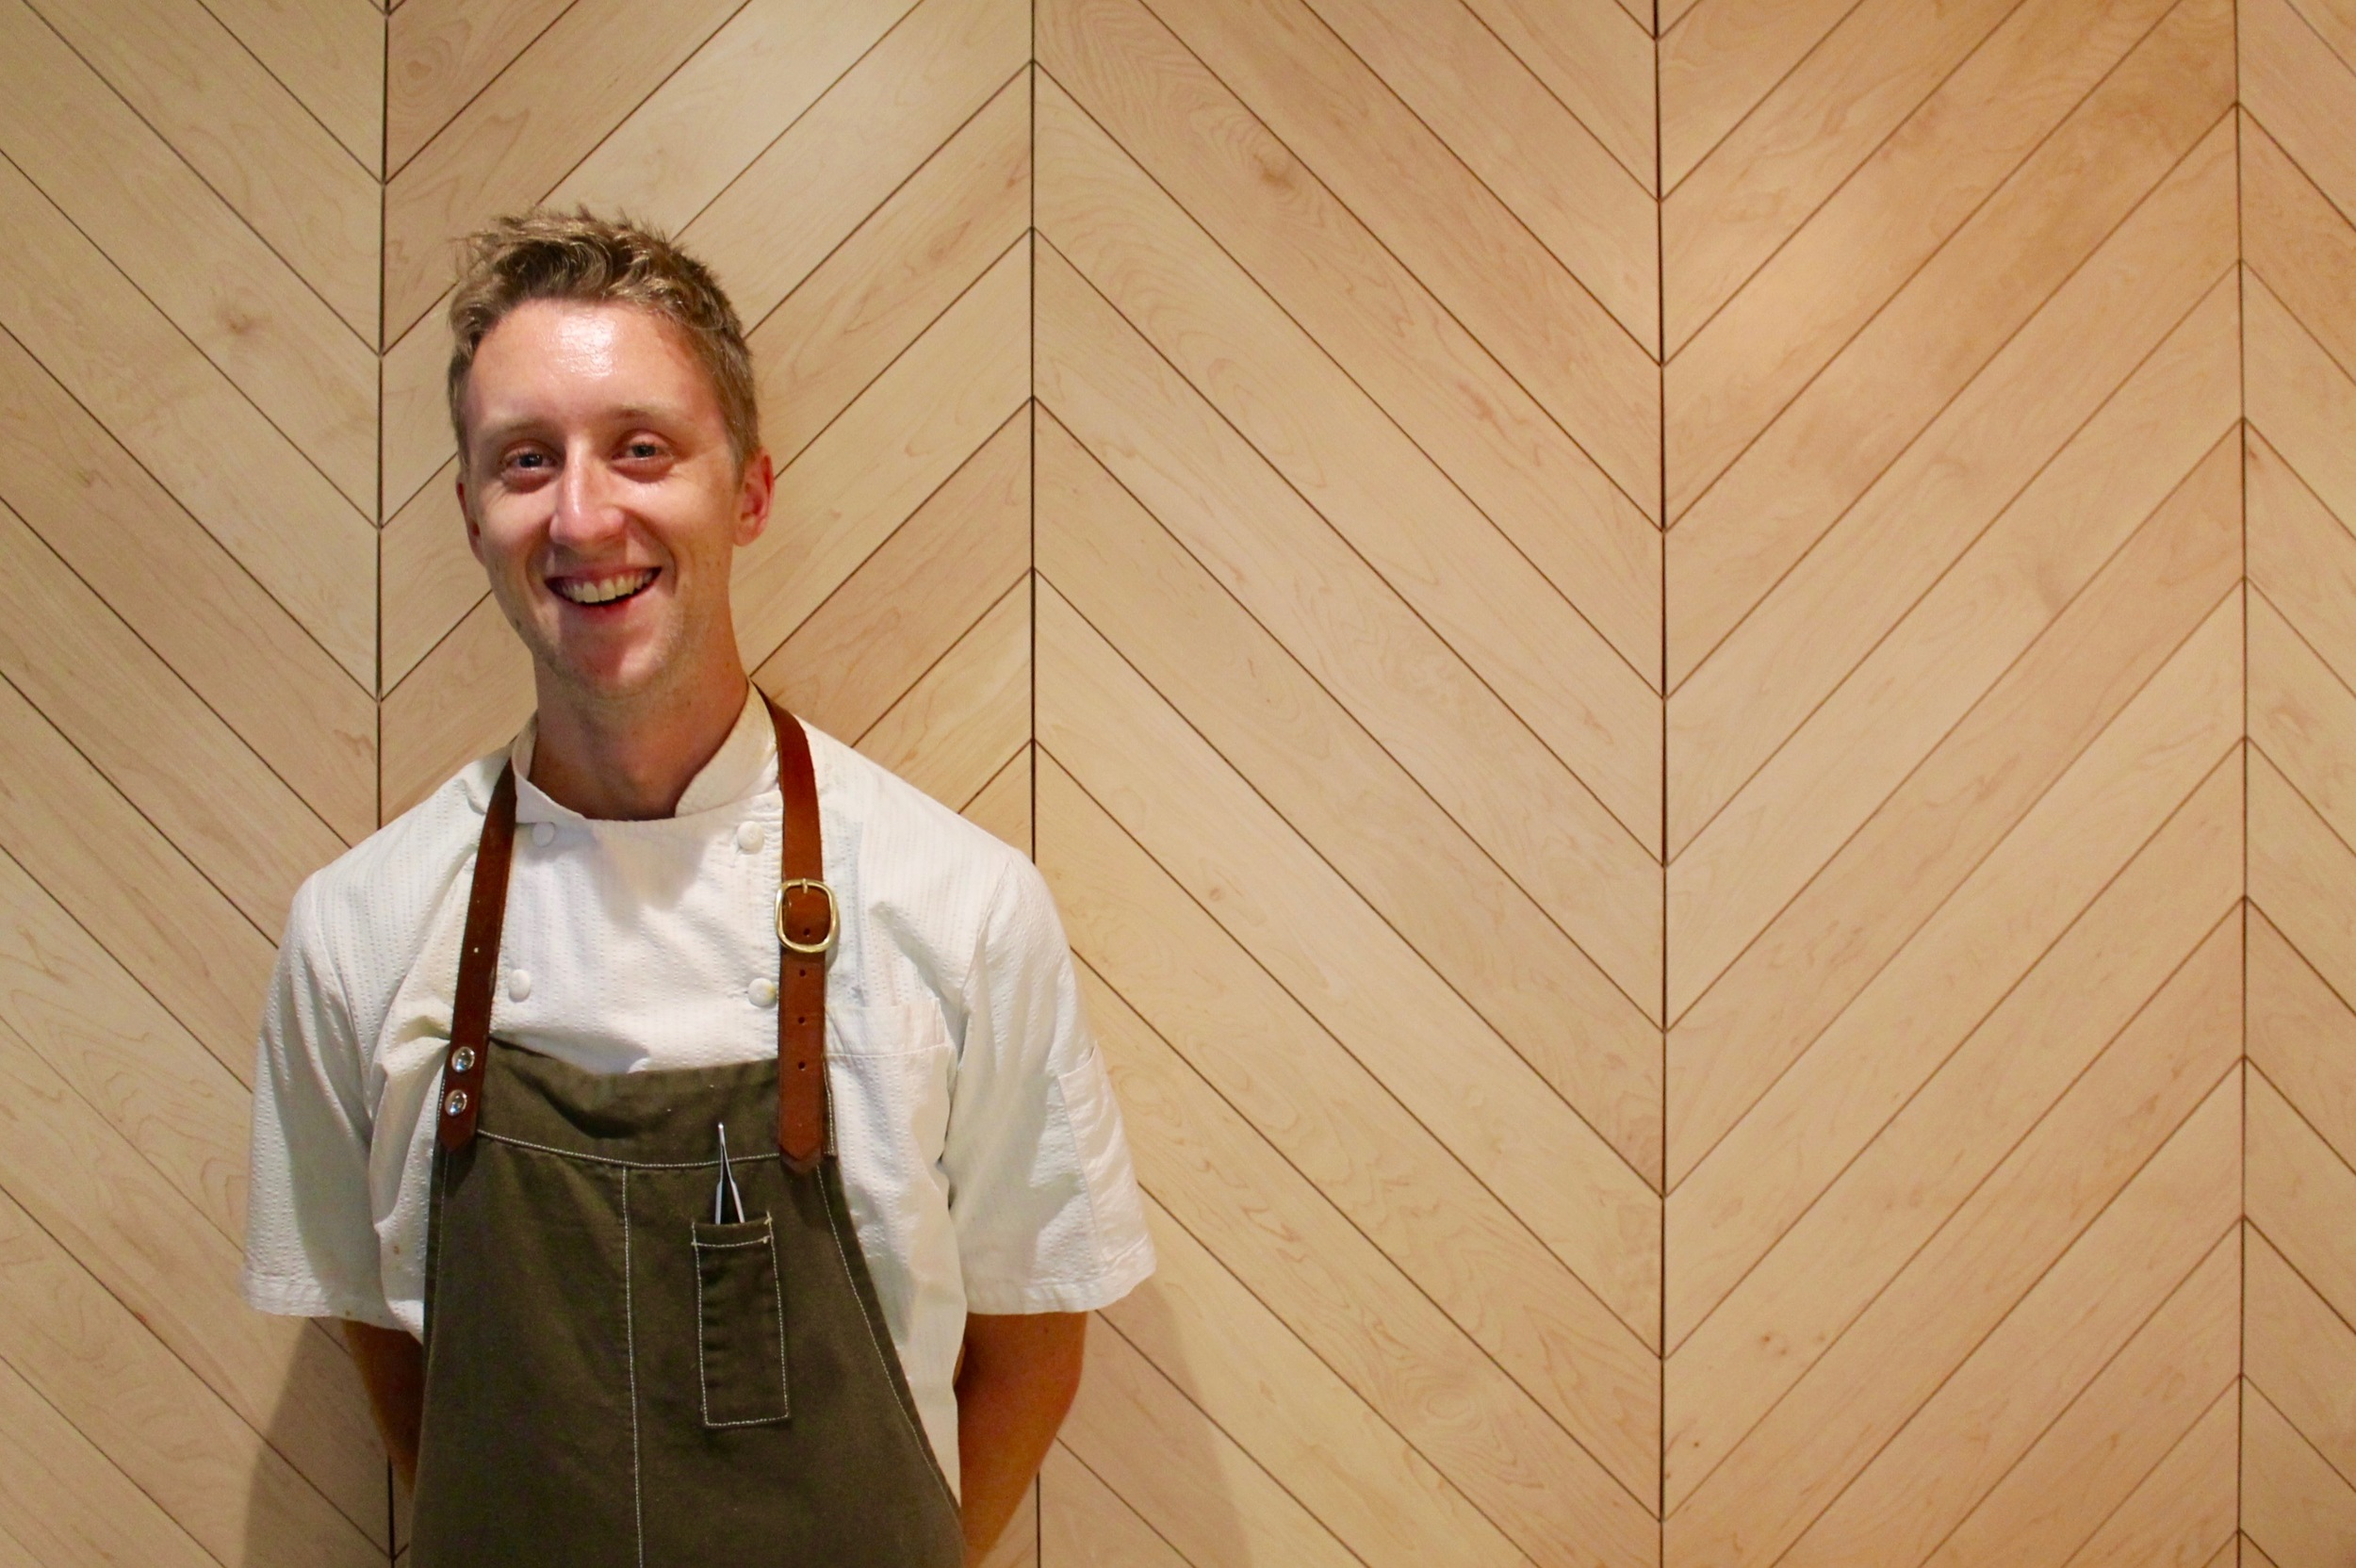 Trevor Musick, sous chef at COUNTER 3. FIVE. VII